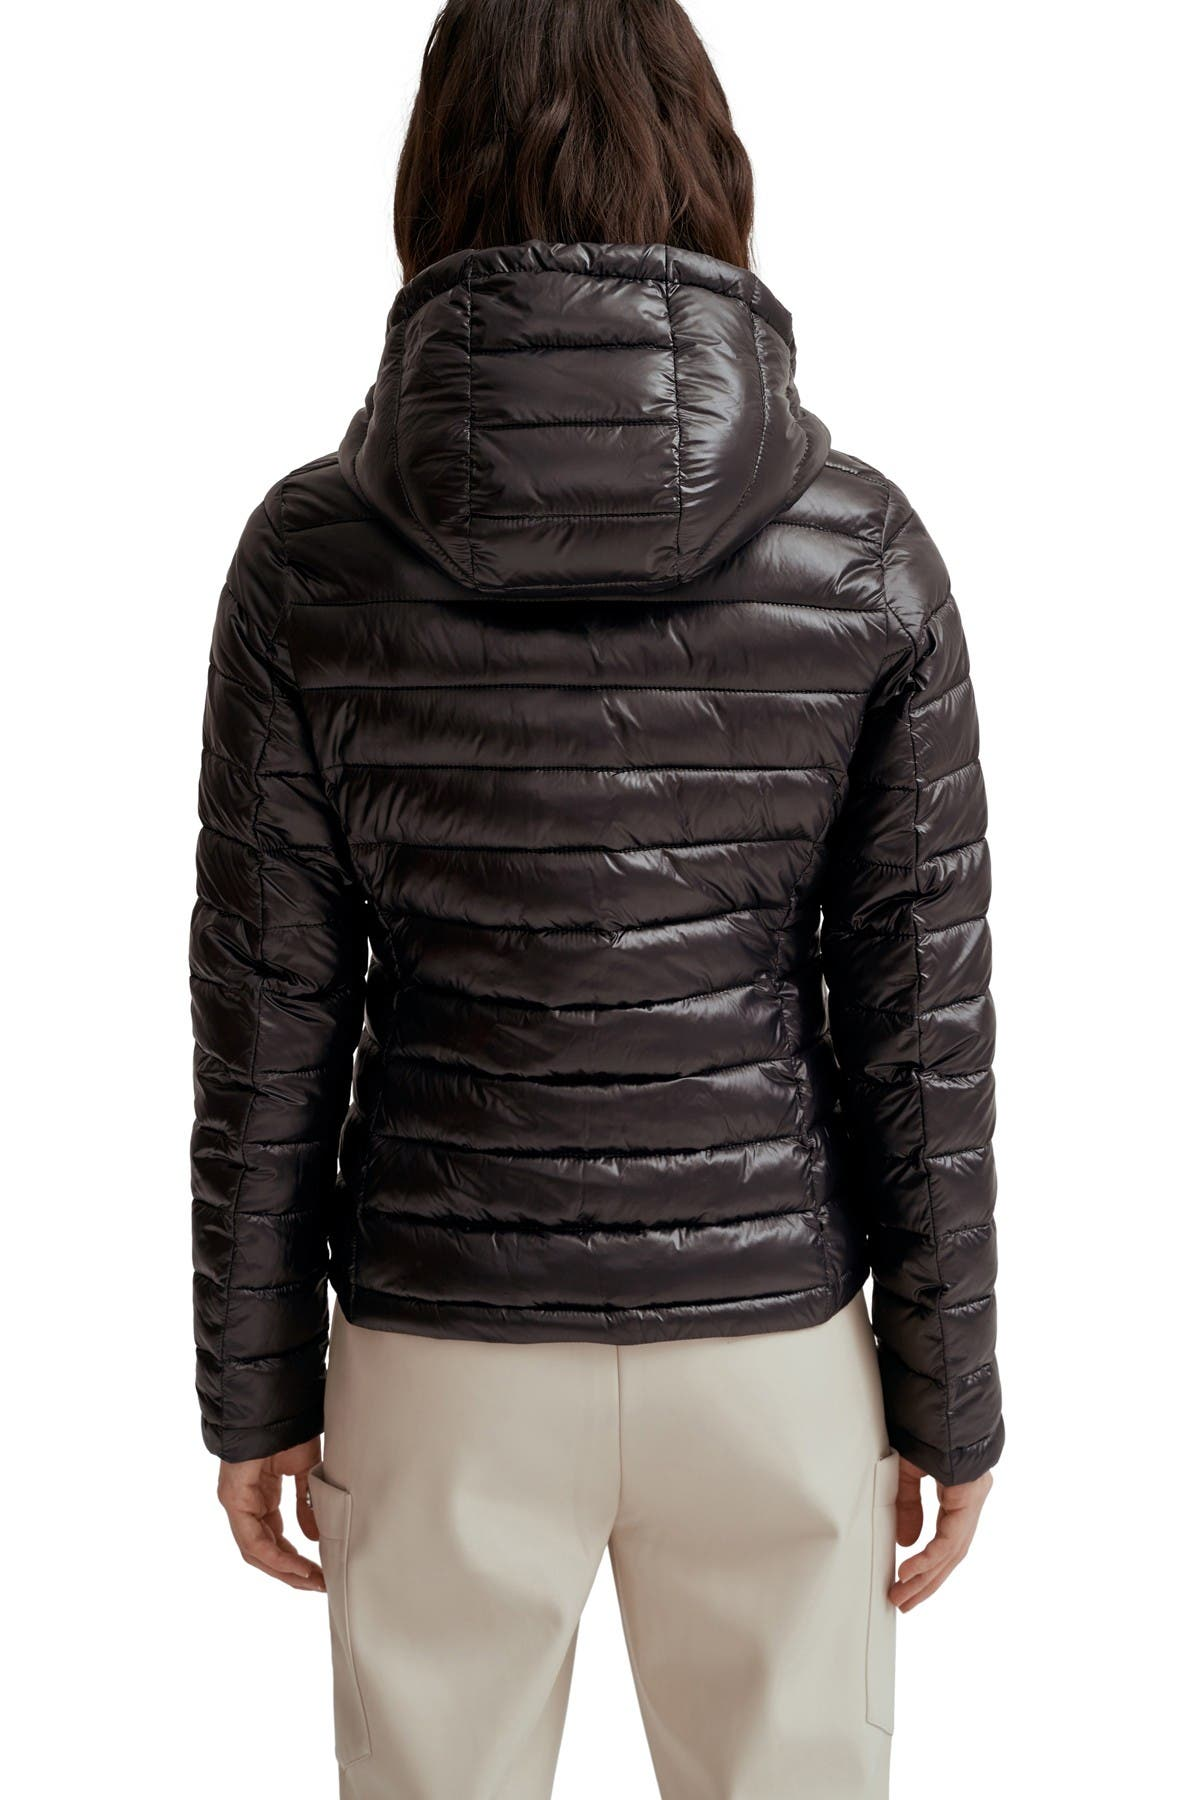 Image of NOIZE Skylar Quilted Ultra Lightweight Hooded Jacket